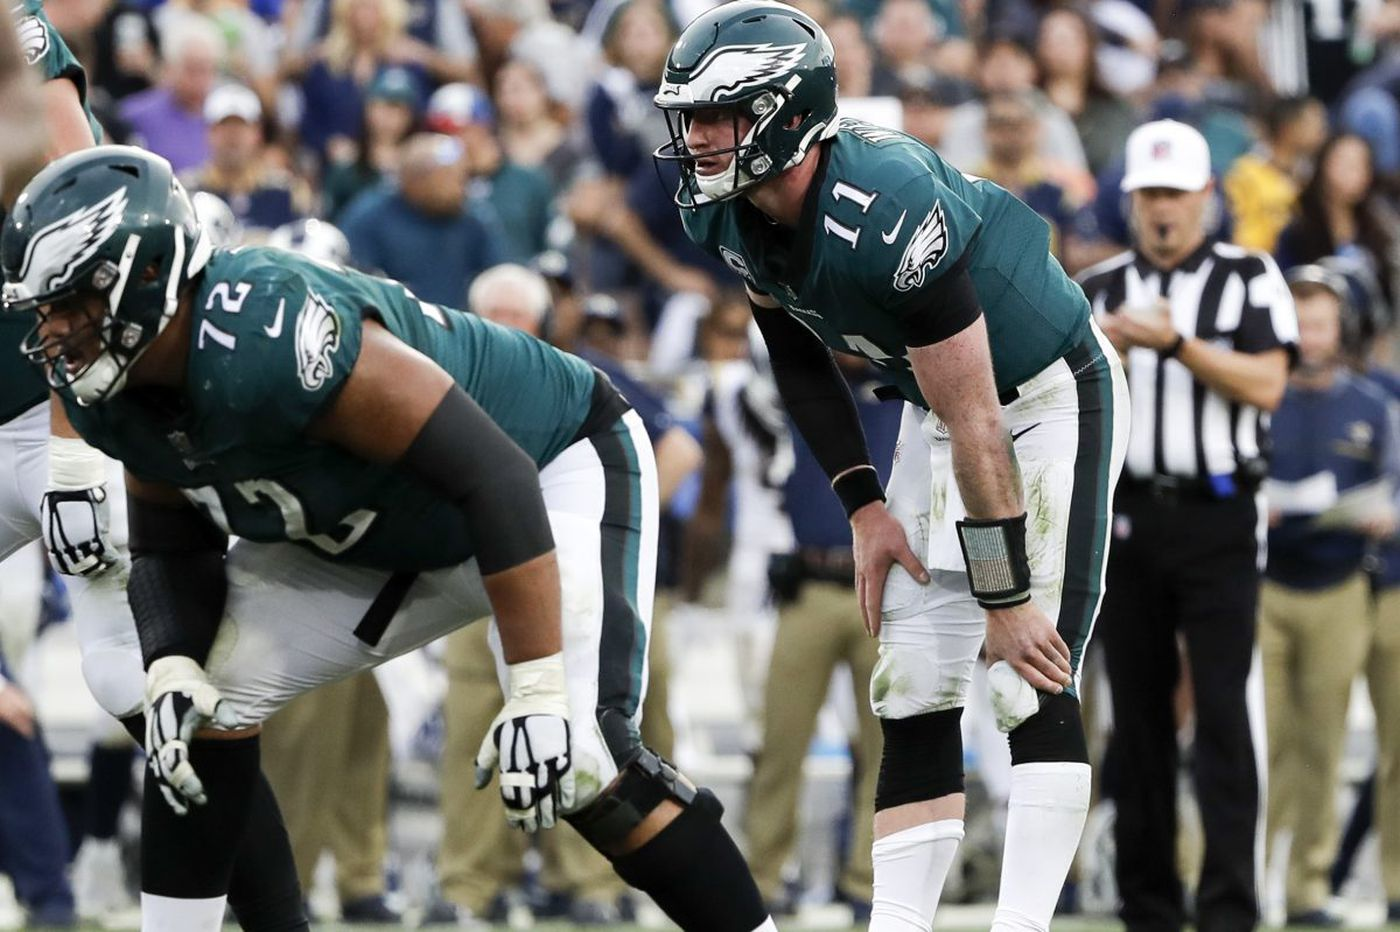 Carson Wentz amazes with his toughness, but his injury seemed inevitable | Jeff McLane